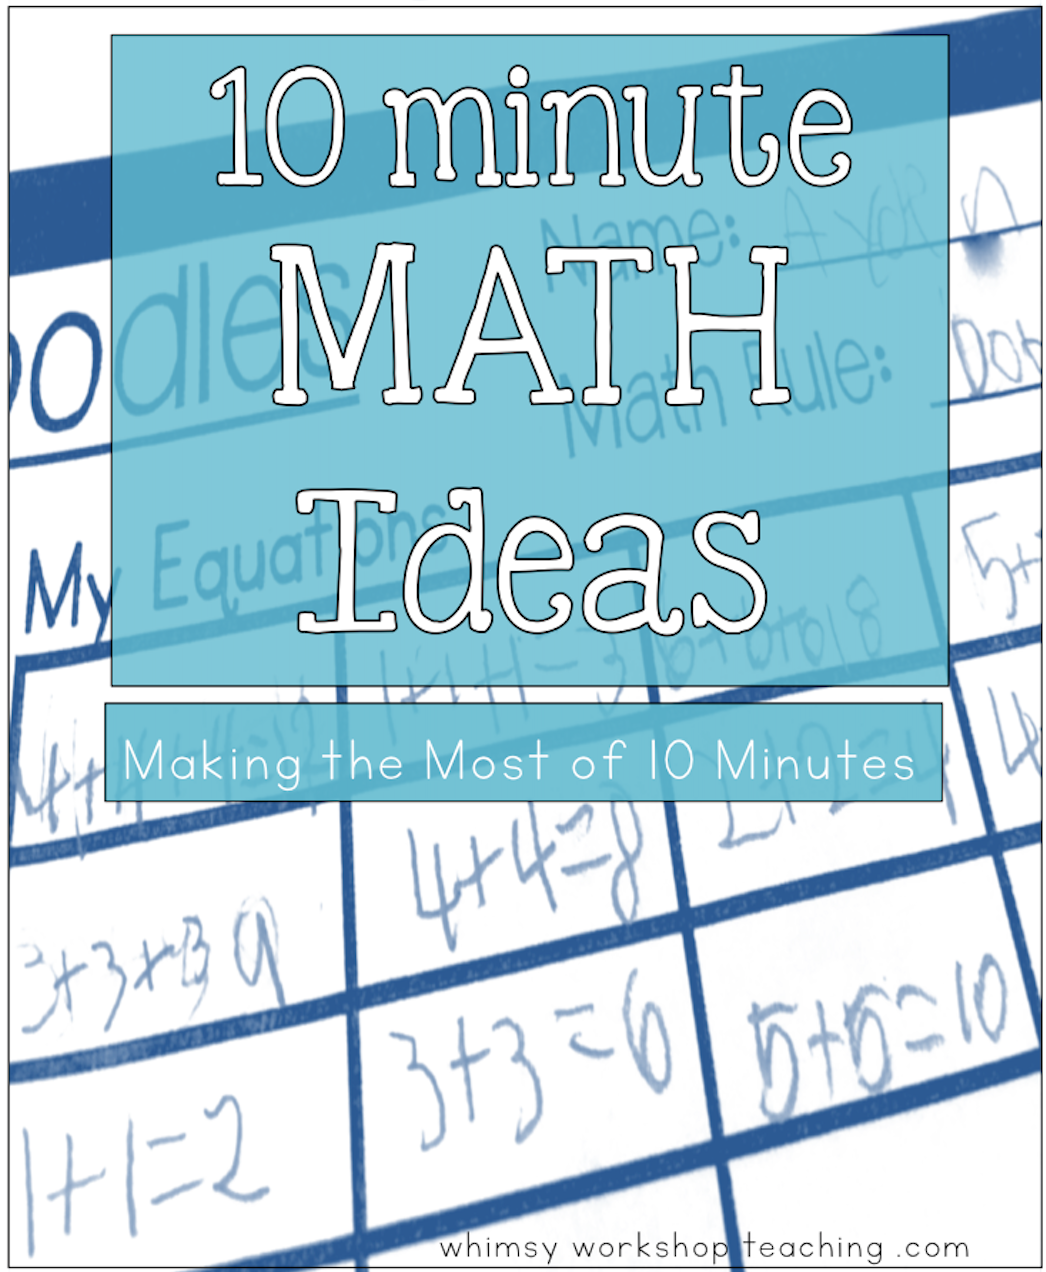 10 Minute Math Ideas - Whimsy Workshop Teaching